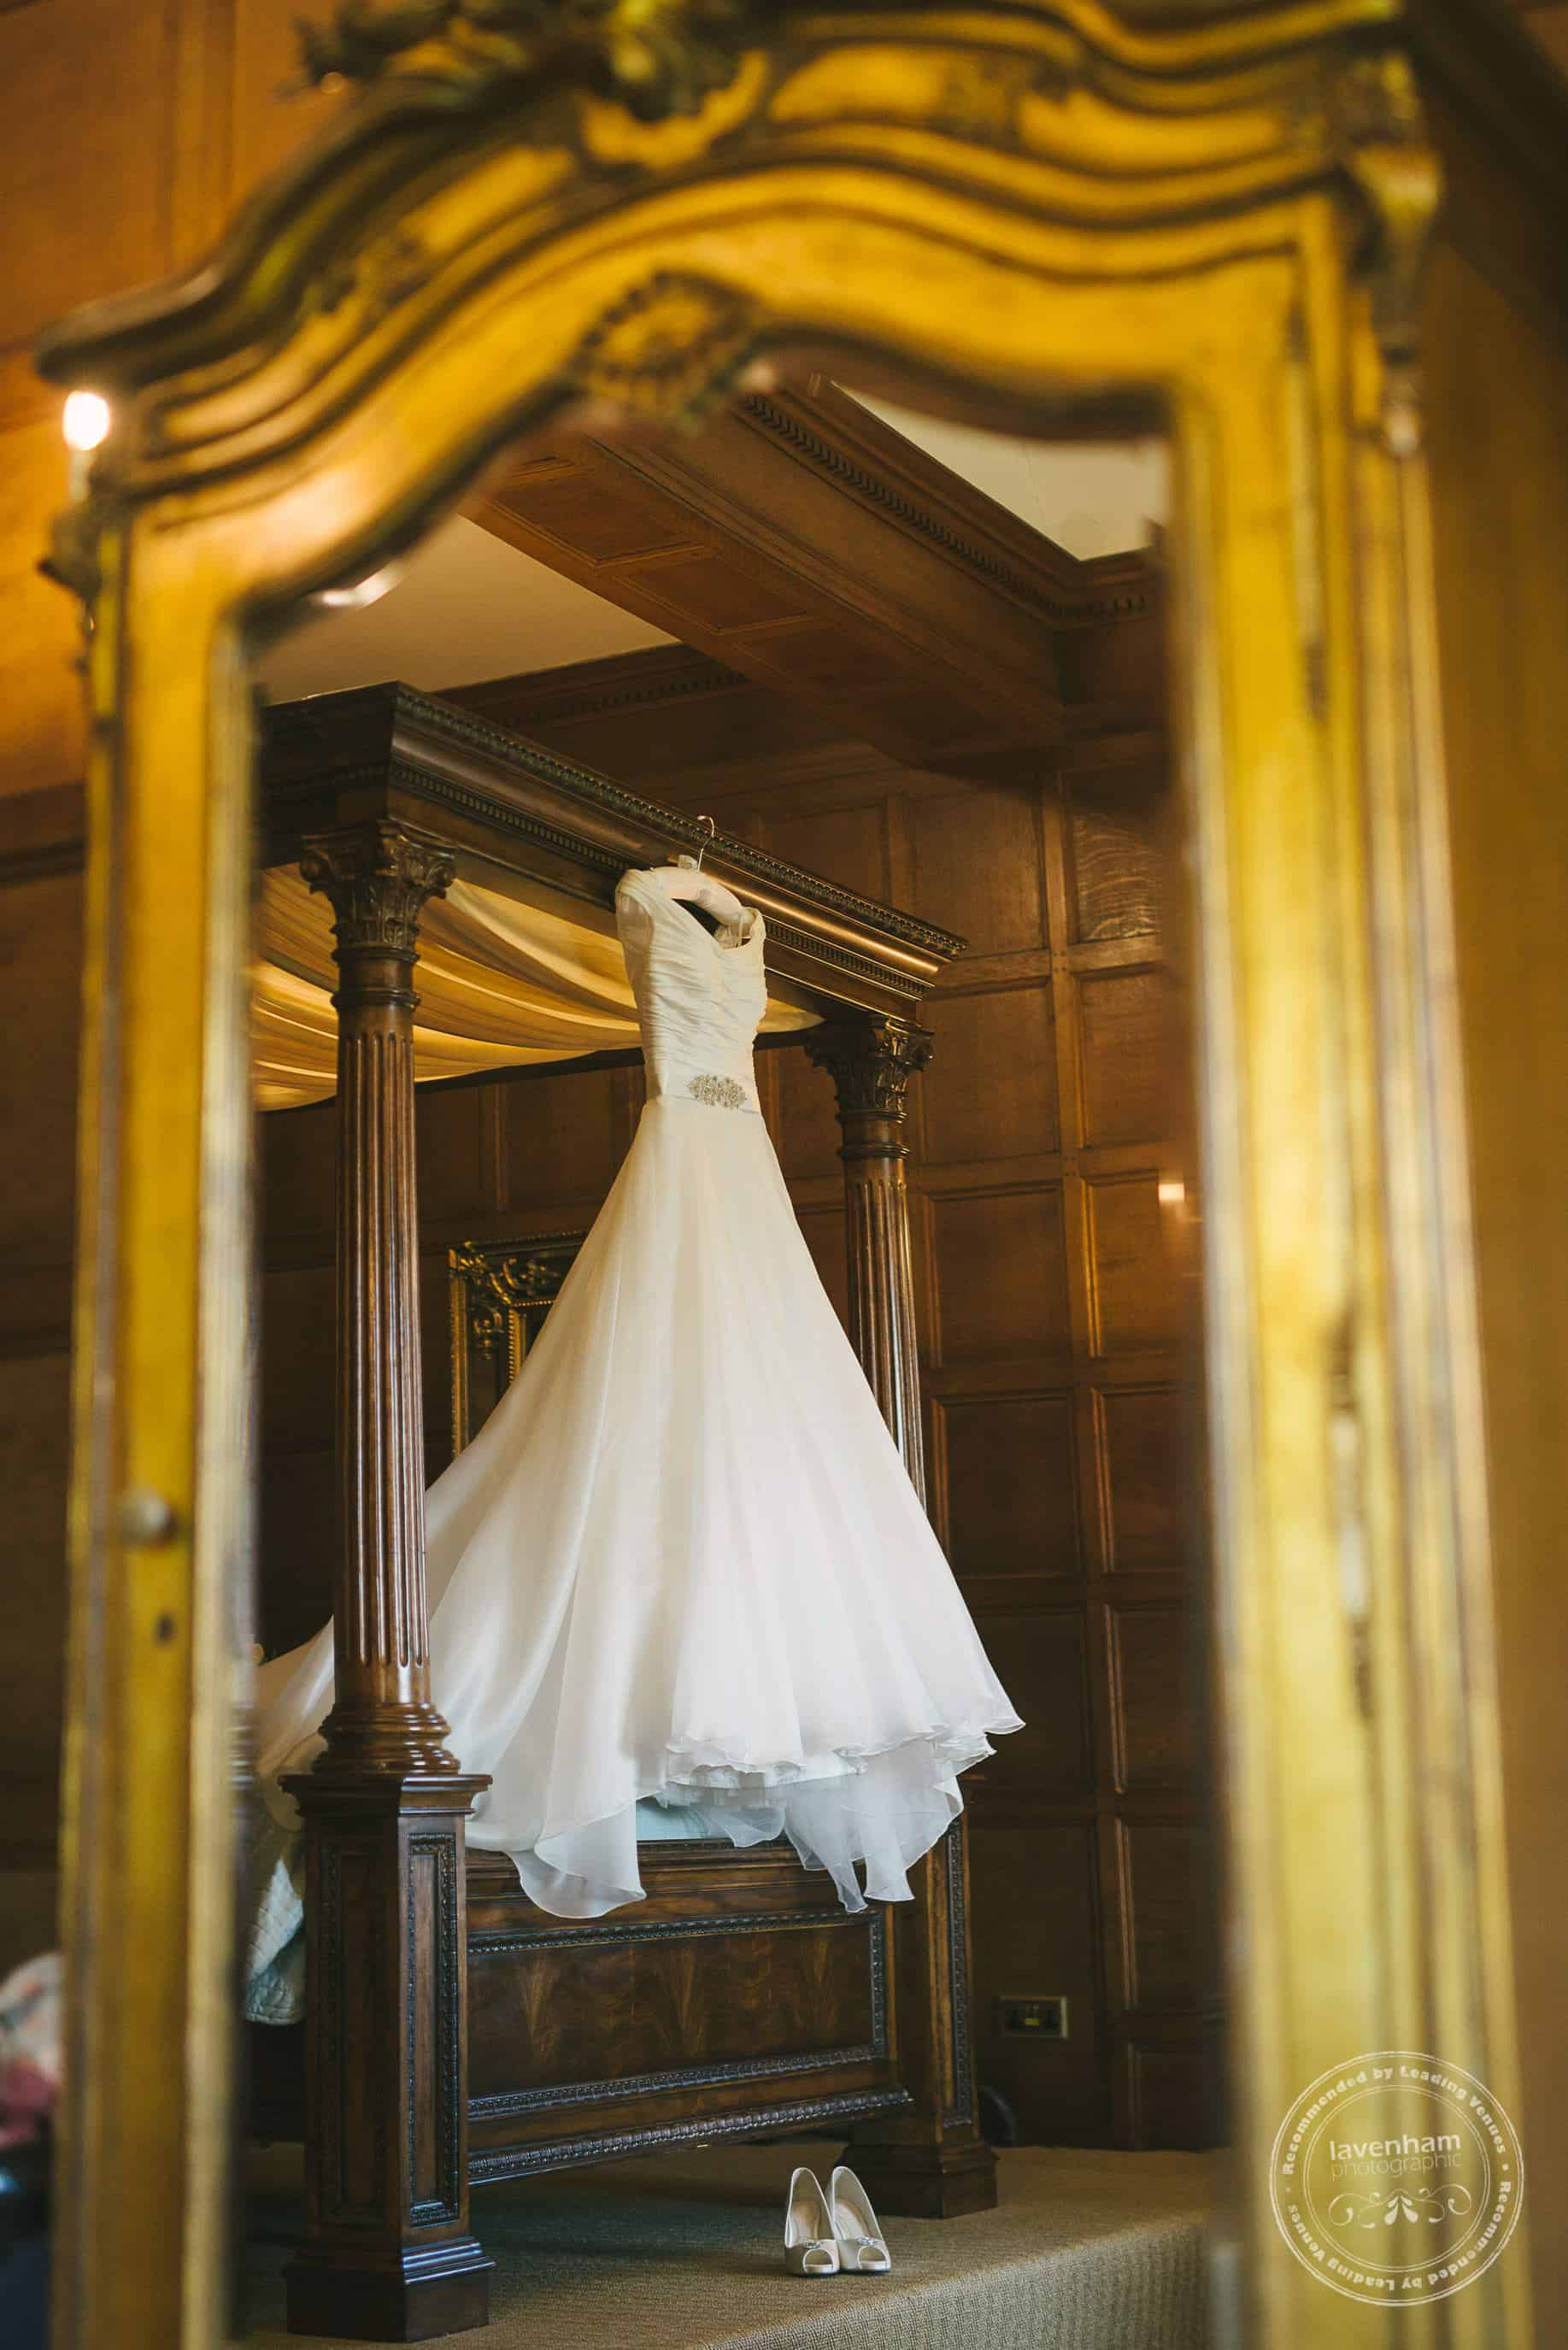 181116 Hengrave Hall Wedding Photographer 008